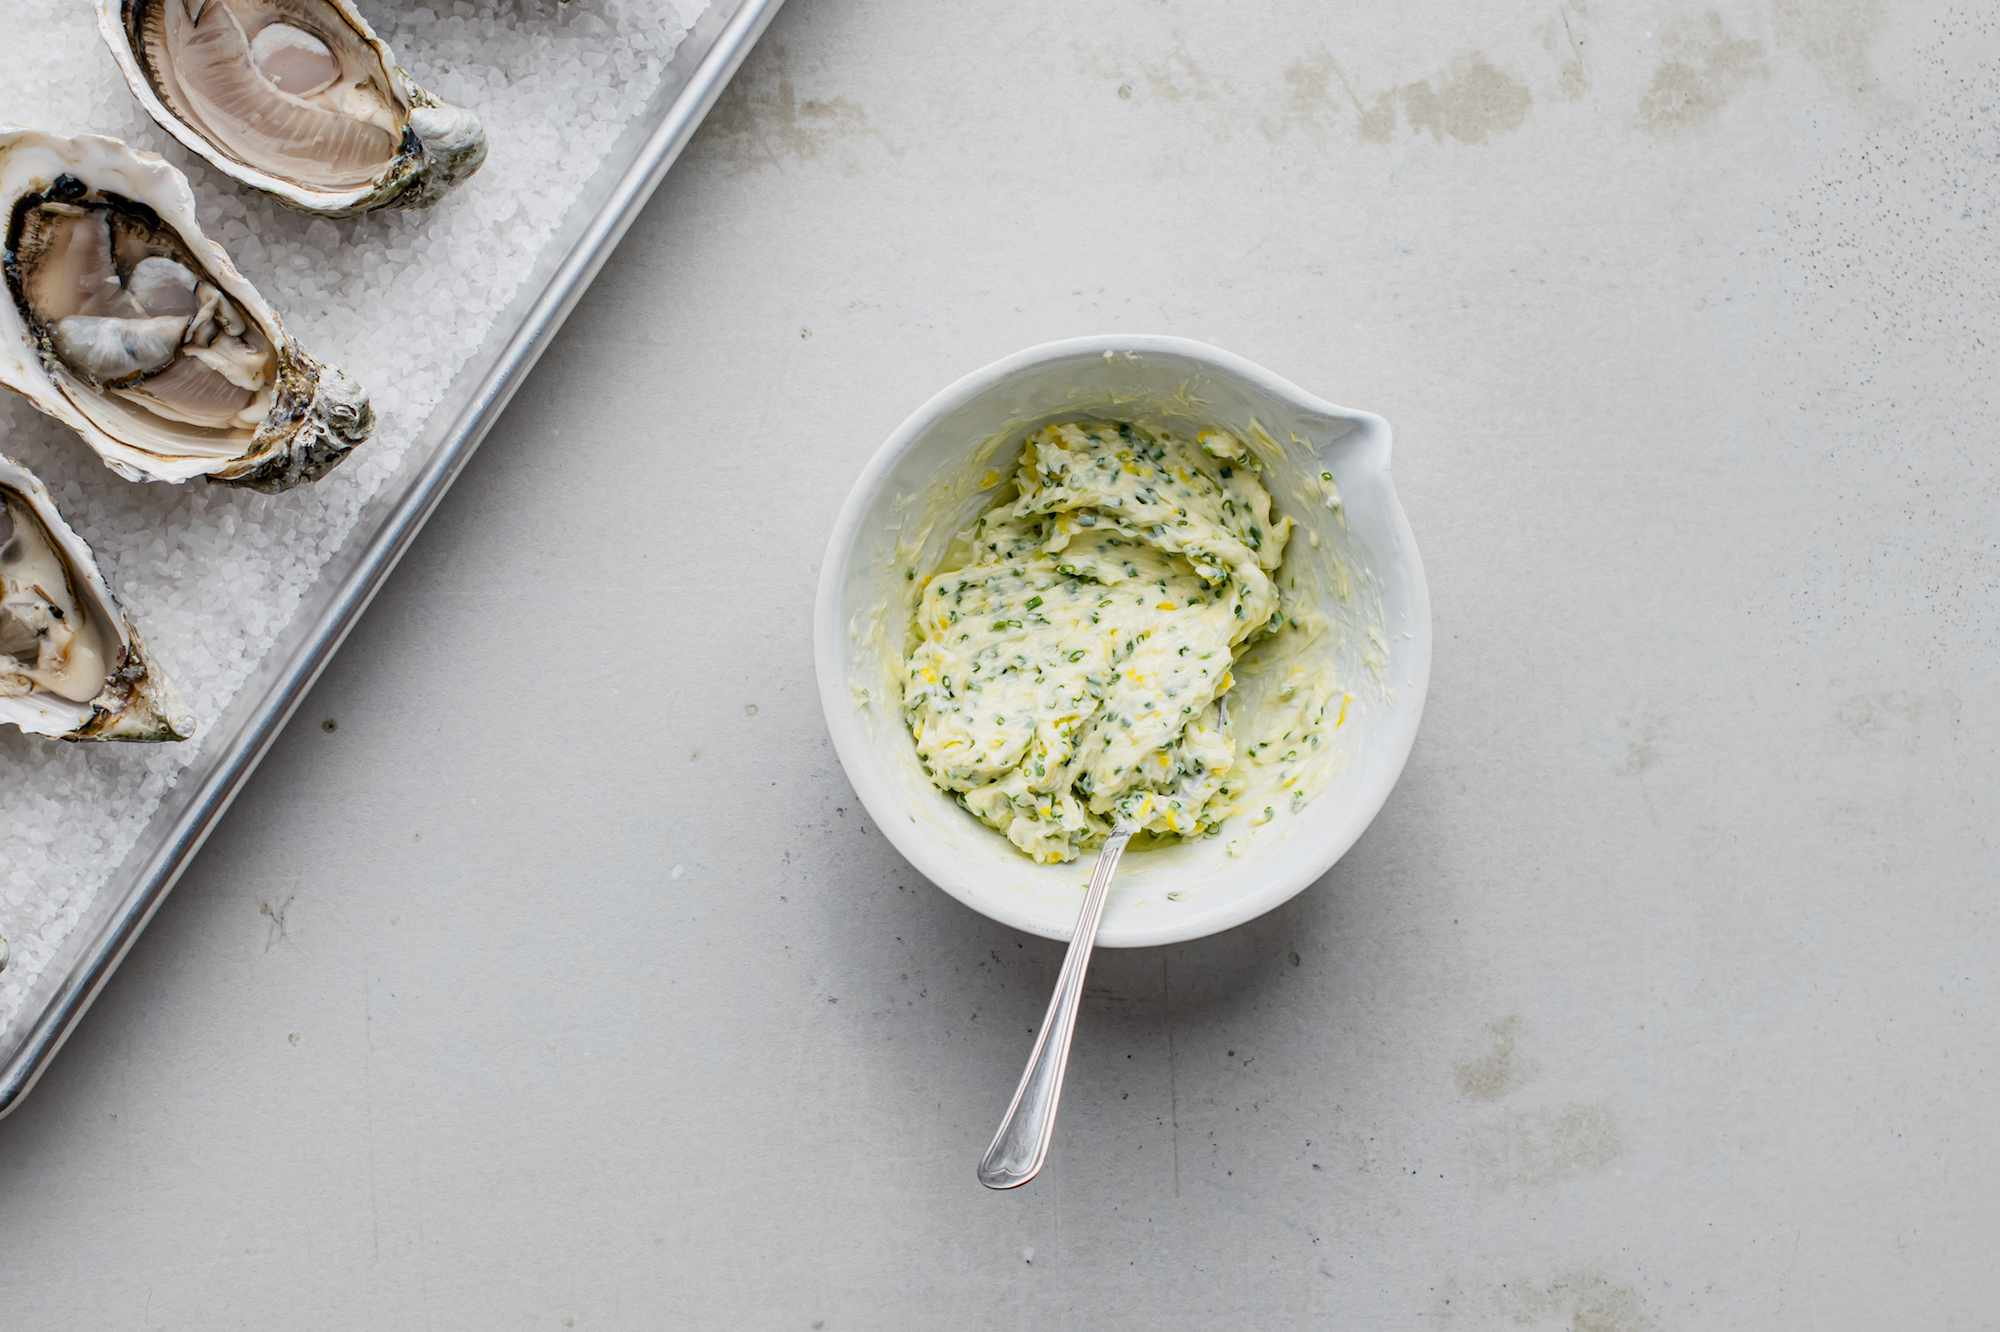 Herb and lemon butter in a bowl